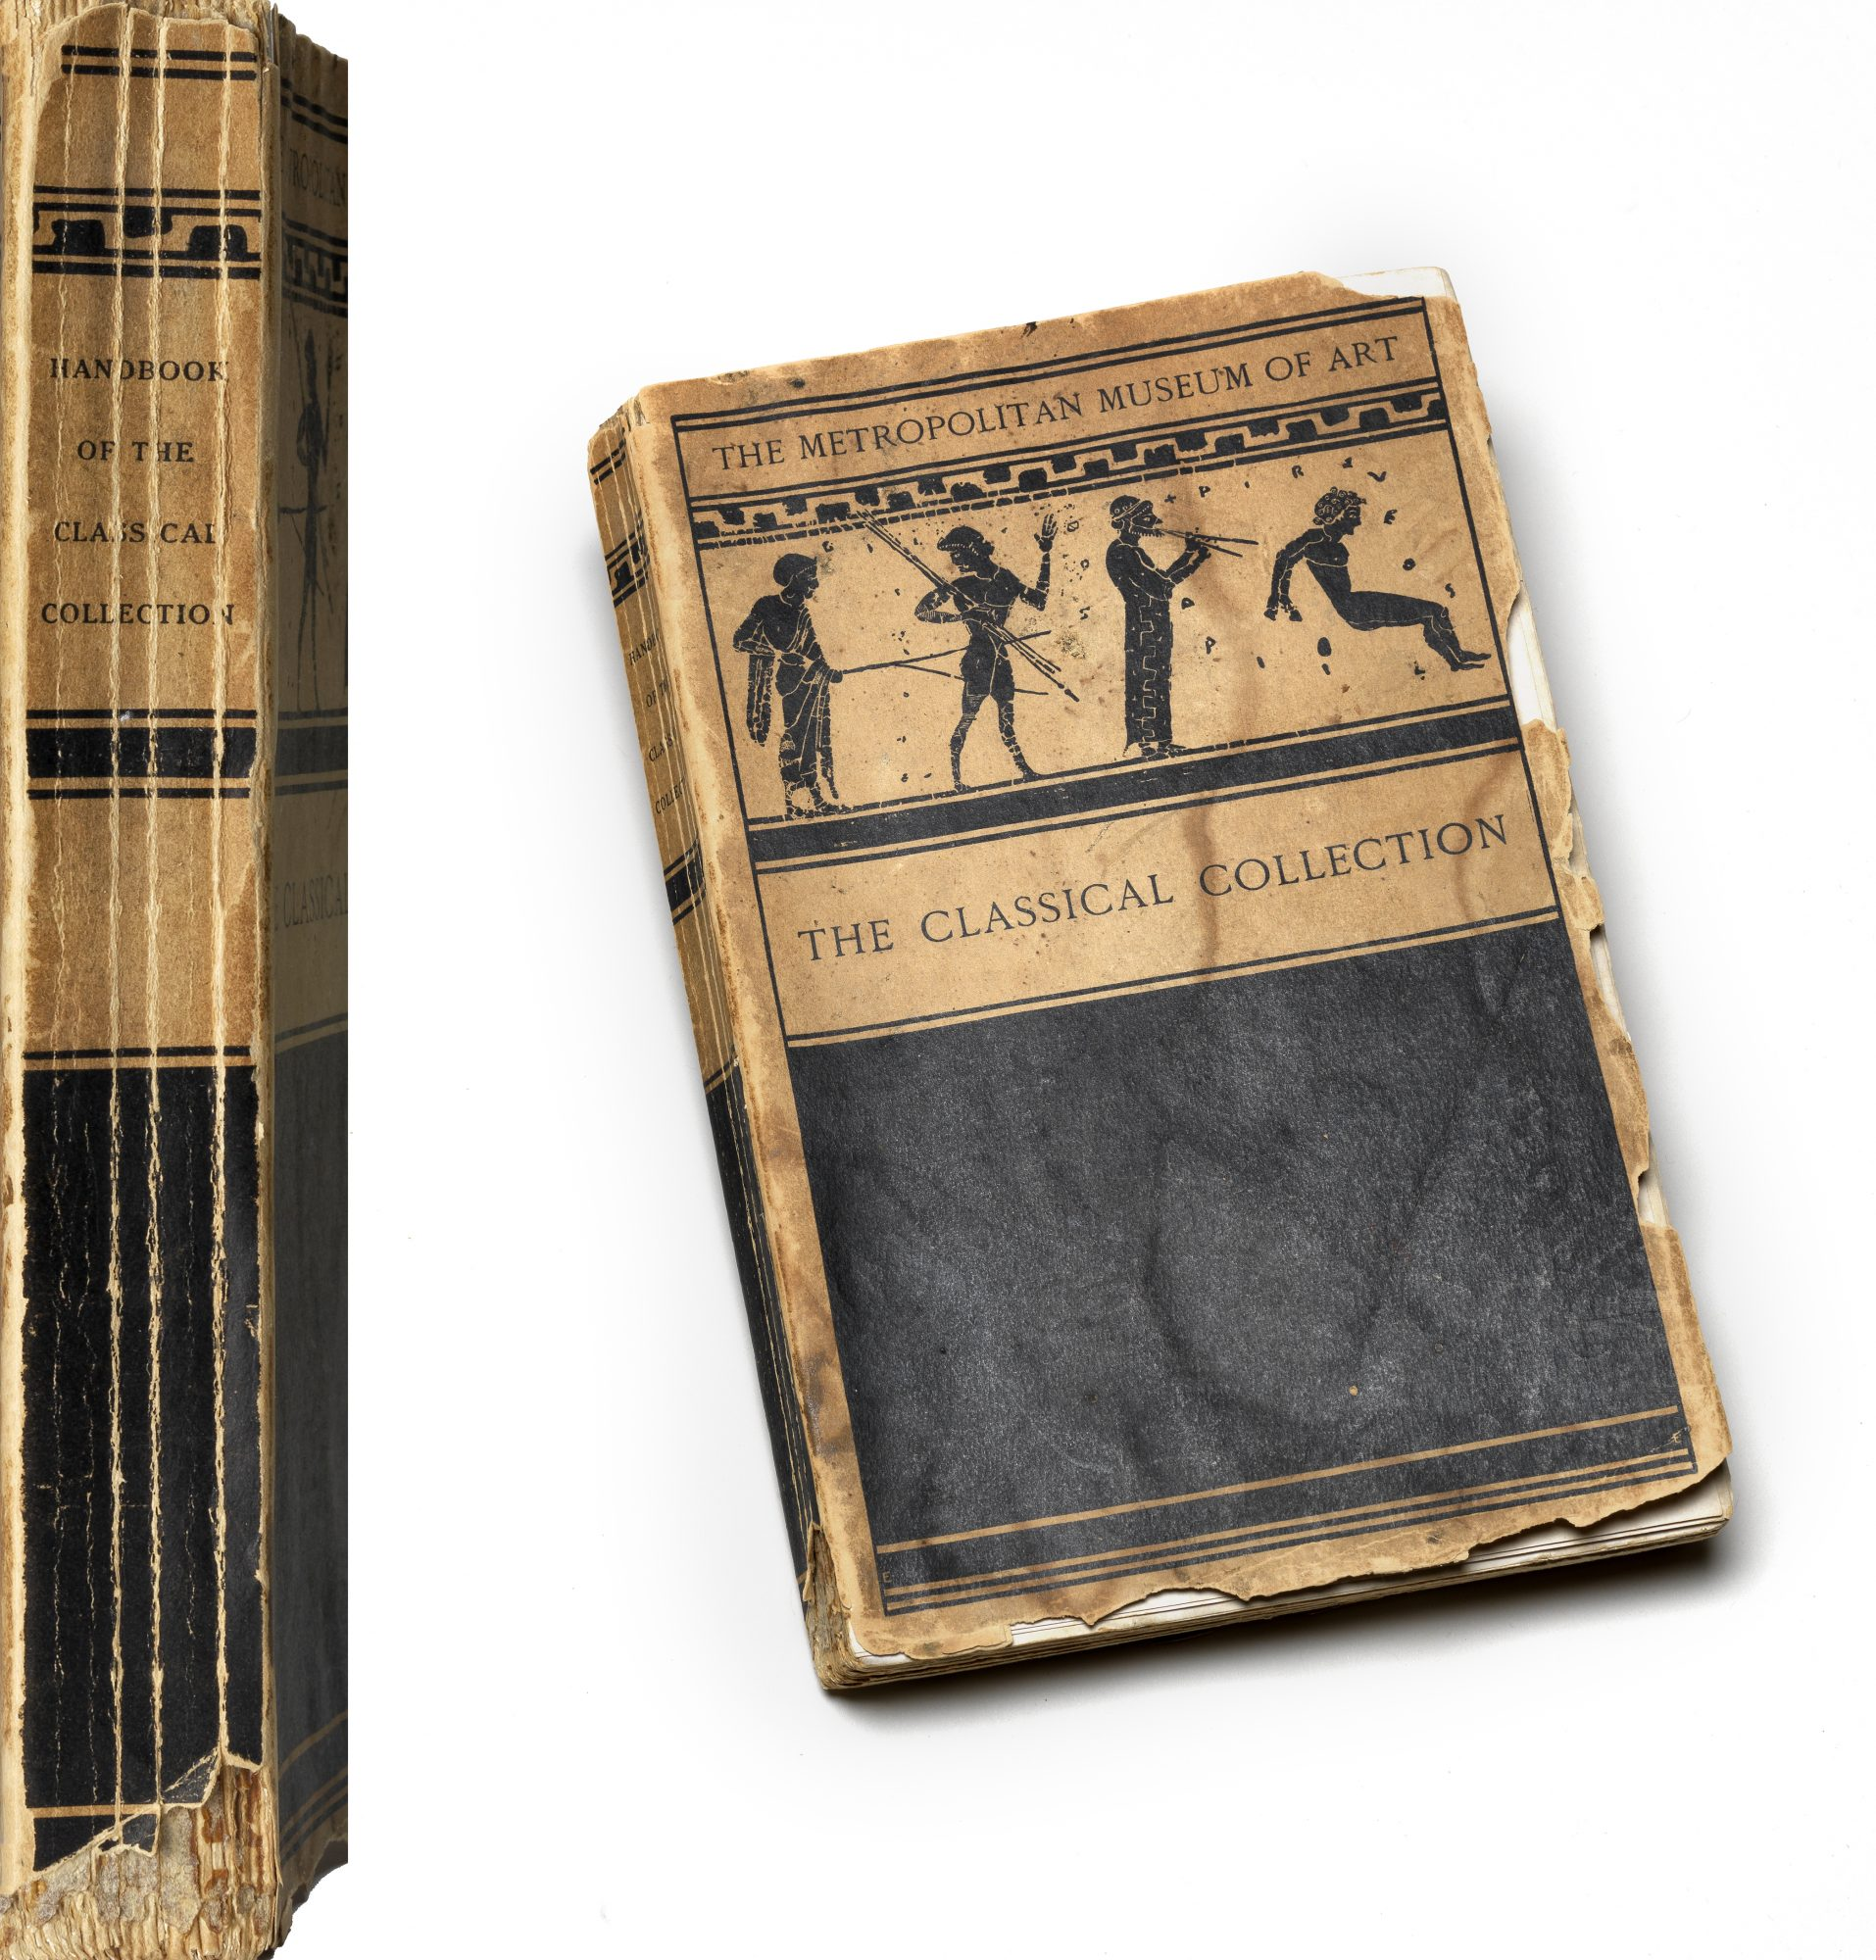 Gisela M. Richter, The Metropolitan Museum of Art: Handbook of the Classical Collection, 1917. 8 3/4 x 6 3/4 x 3/4 in. Williams College Museum of Art, Prendergast Archive and Study Center, Gift of Mrs. Charles Prendergast, A.1.204